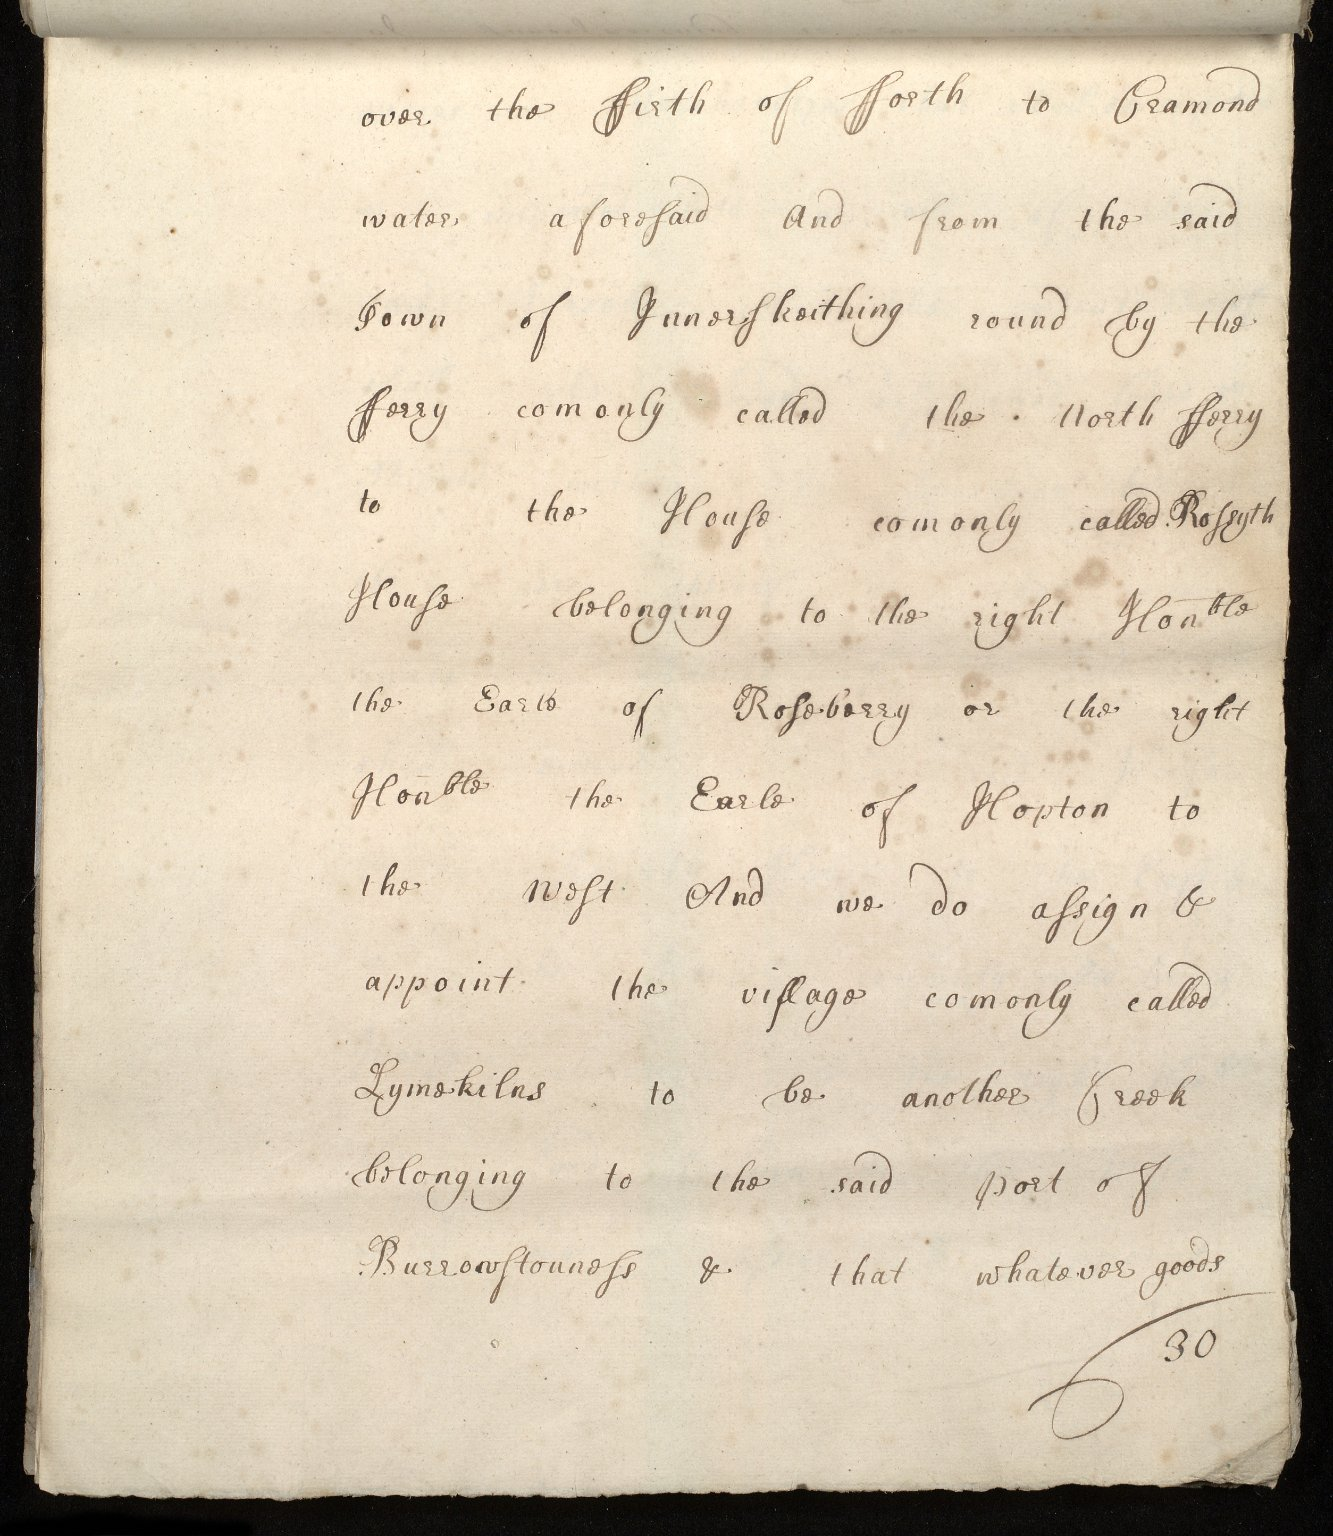 [Commission by Queen Anne to John Adair and others to appoint the town of Borrowstounness (Bo'ness) to be a port and to fix the bounds thereof] [30 of 39]